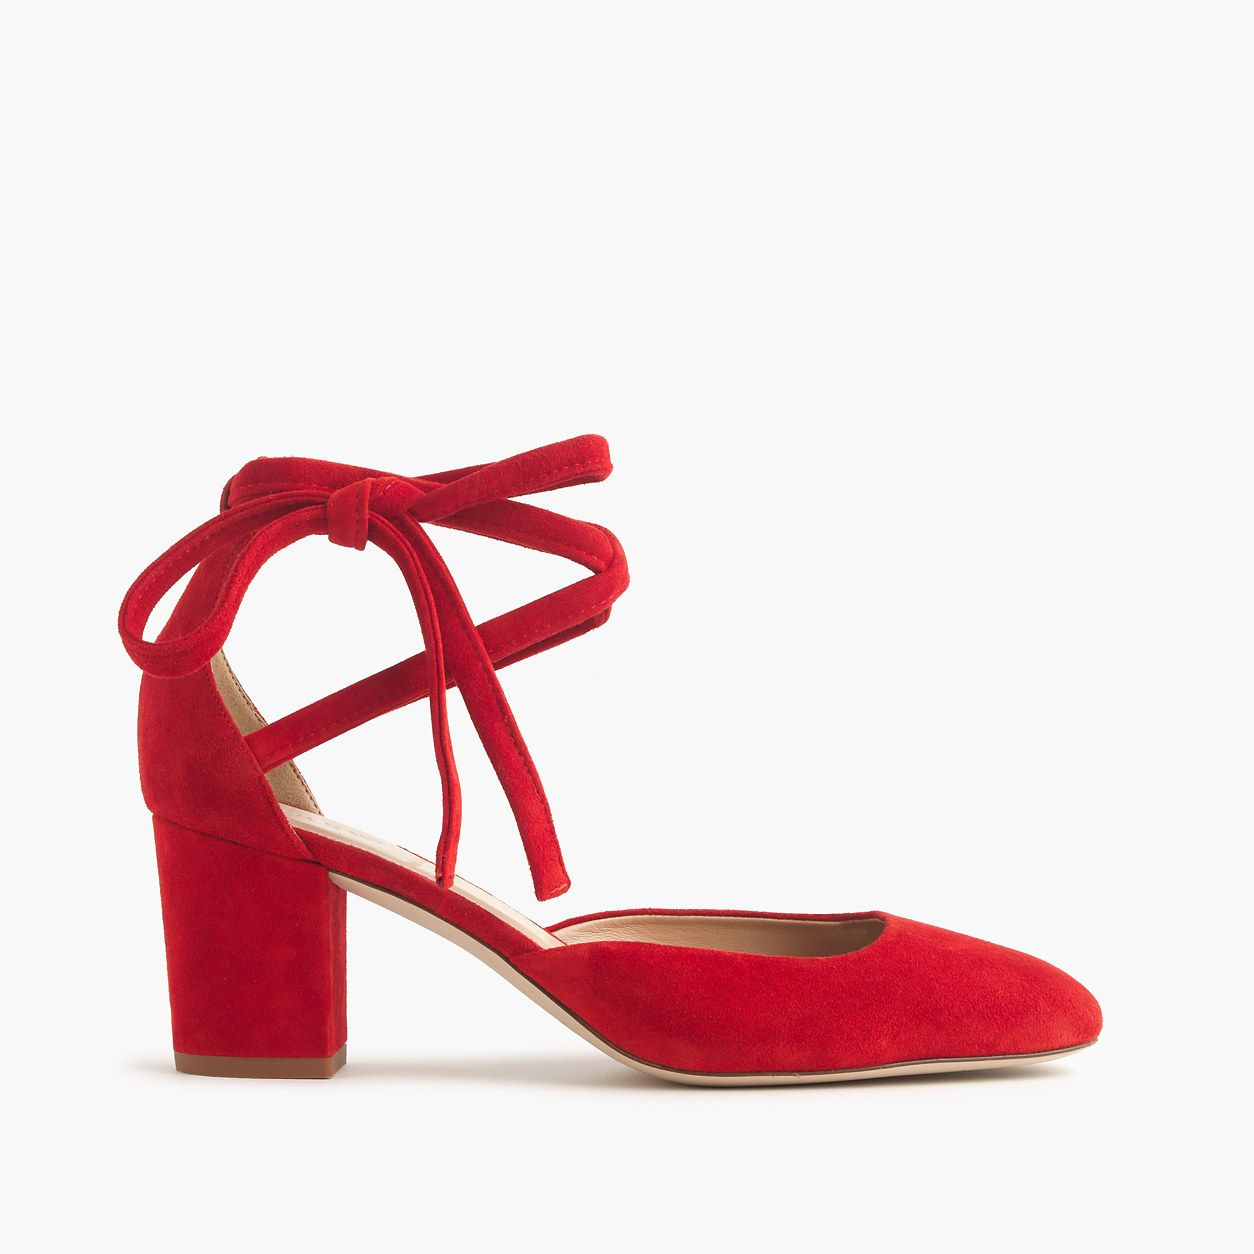 J.Crew Womens Sophia Ankle-Wrap Pumps In Suede (Size 10.5 M)